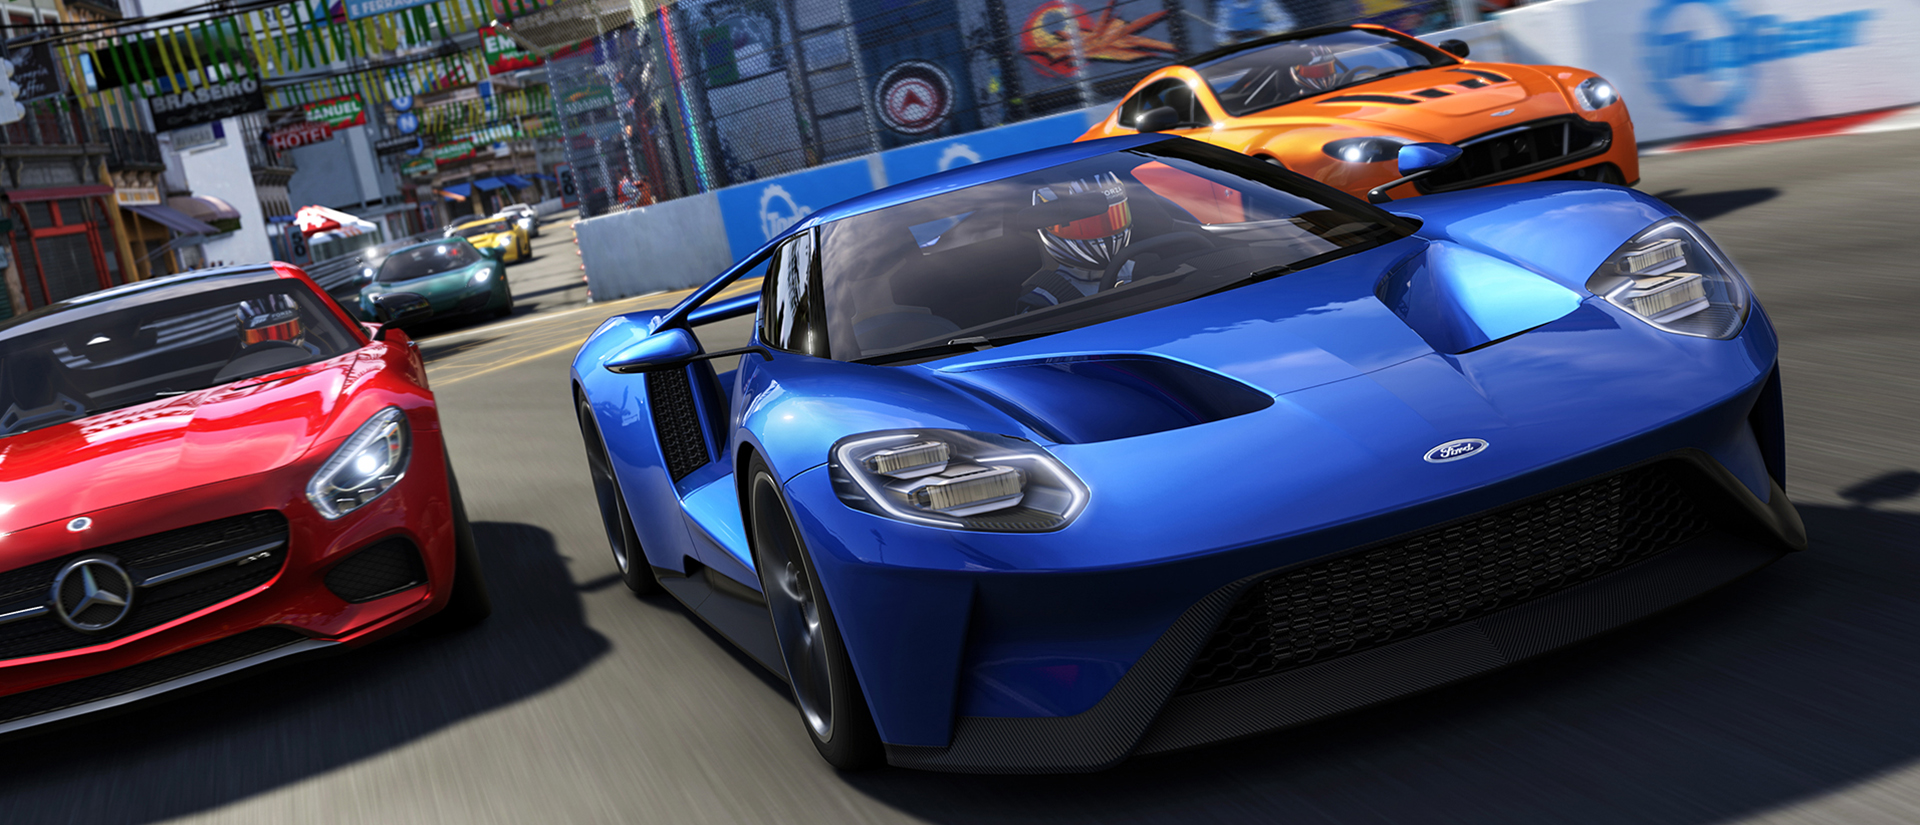 Welcome to Forza Motorsport 6